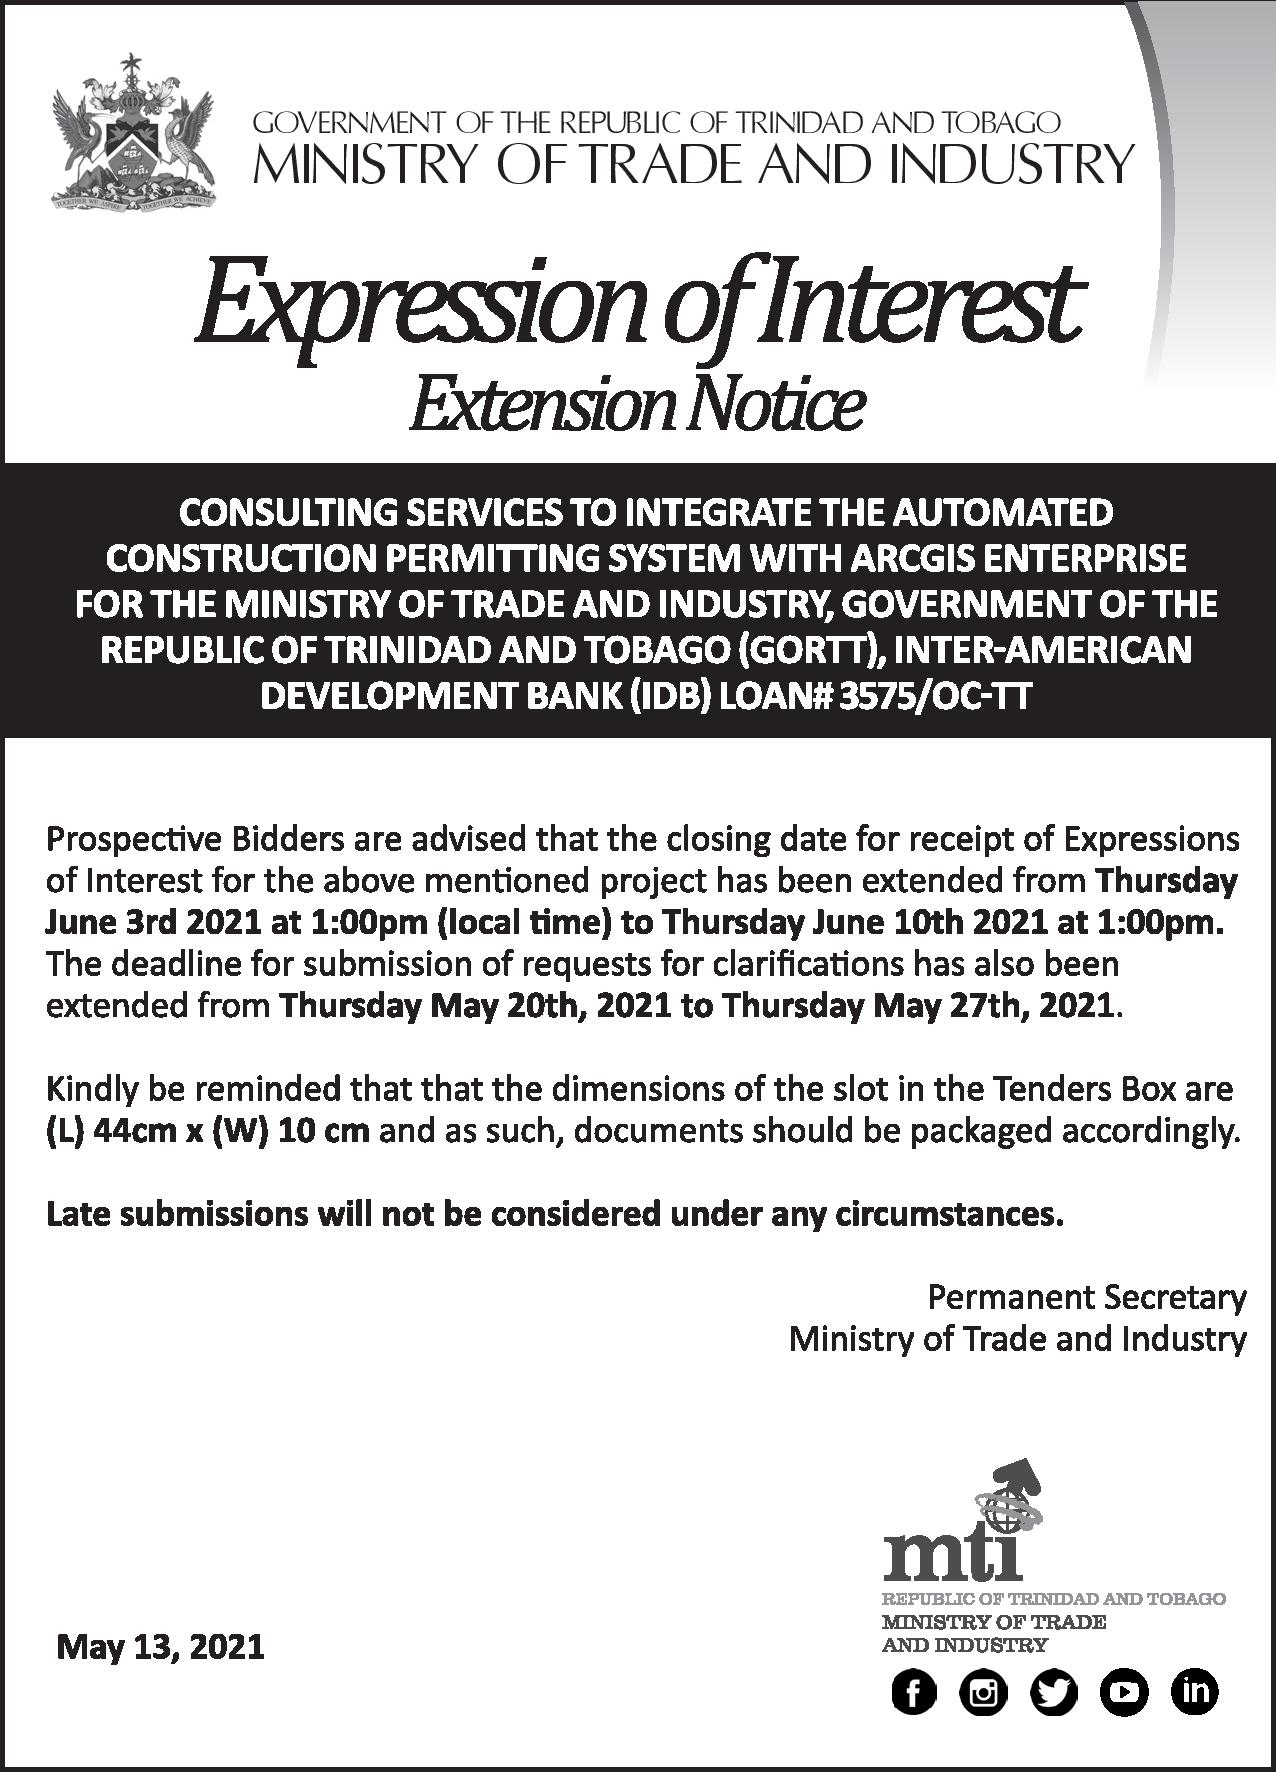 EXPRESSION OF INTEREST: Extension Notice